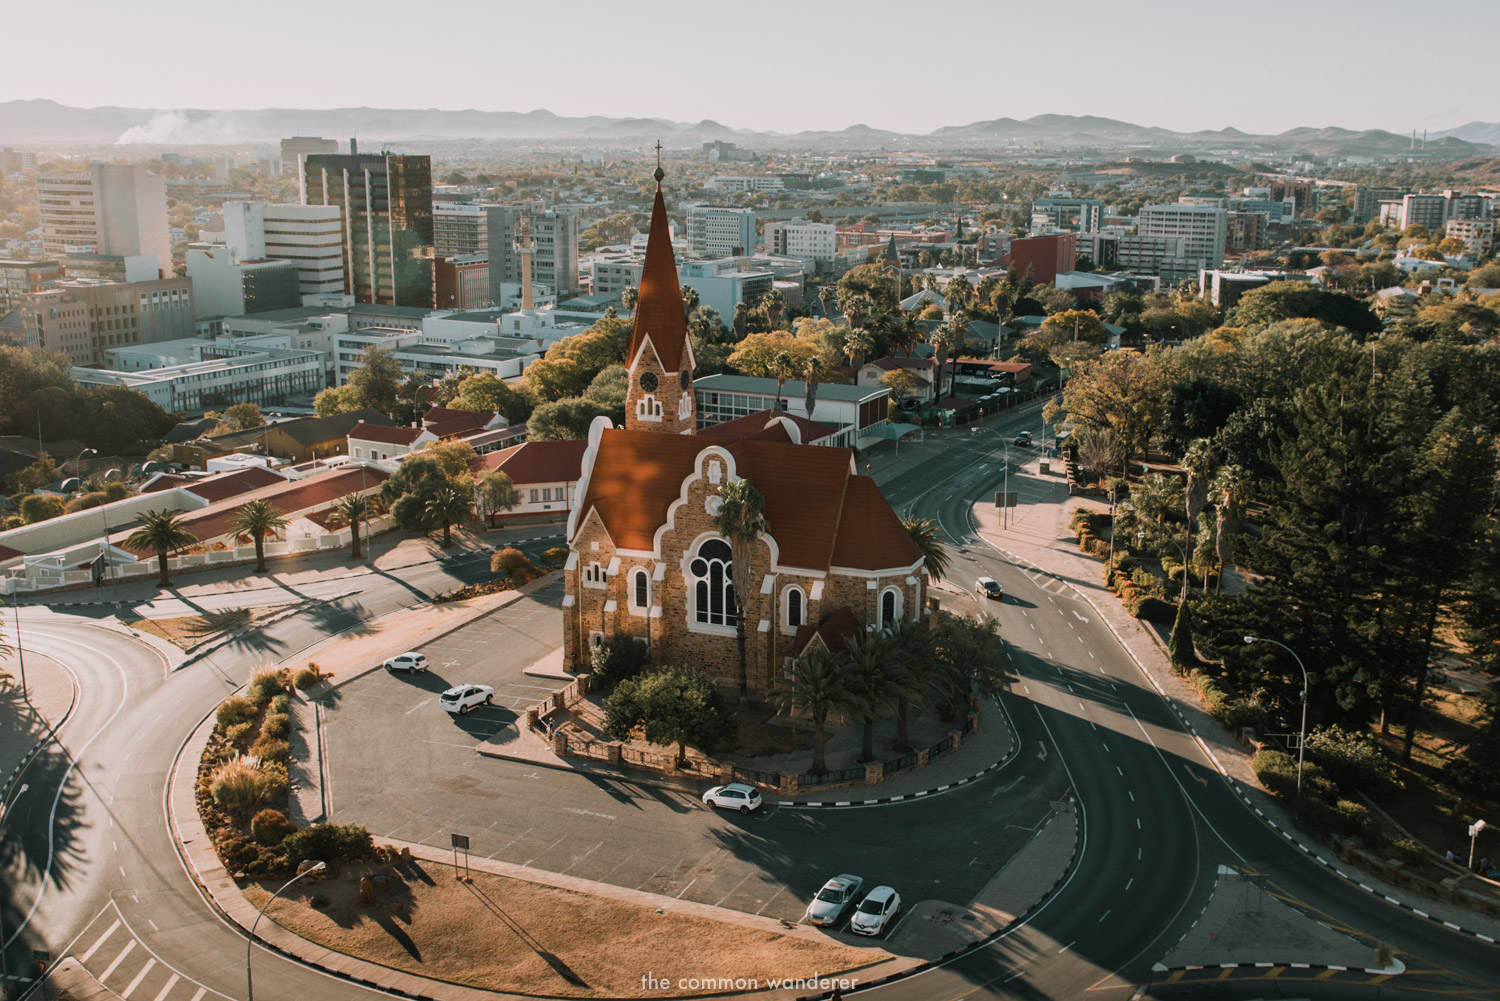 Christuskirche at sunset, Windhoek, Namibia. The starting point for any Namibia self drive itinerary